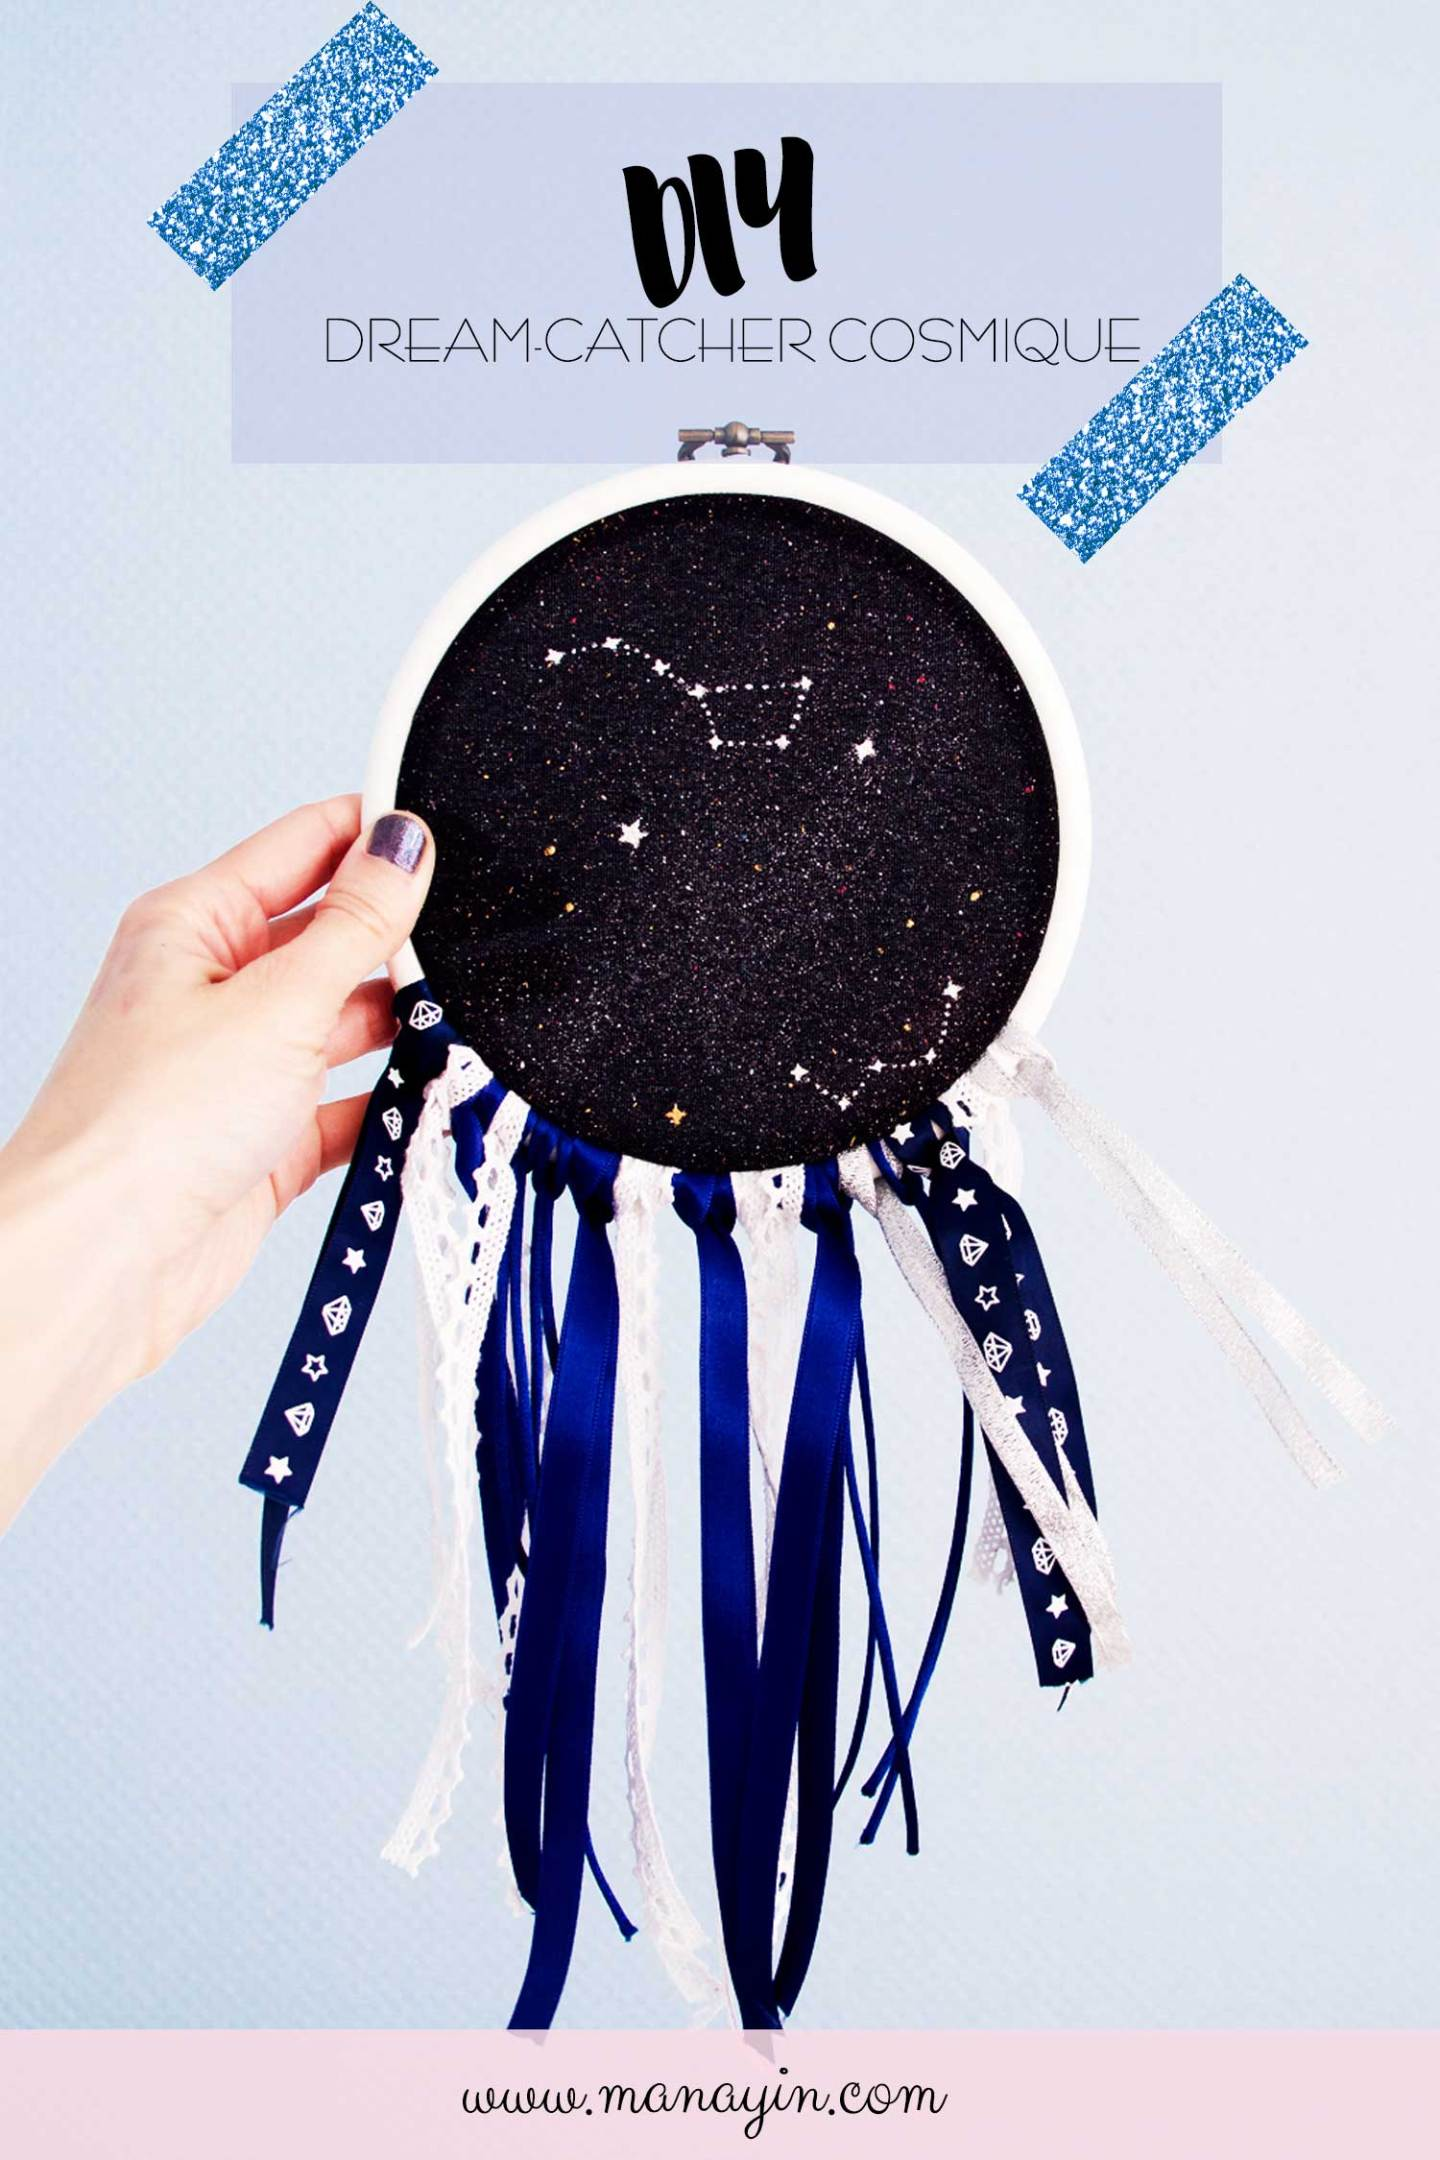 DIY dream-catcher cosmique